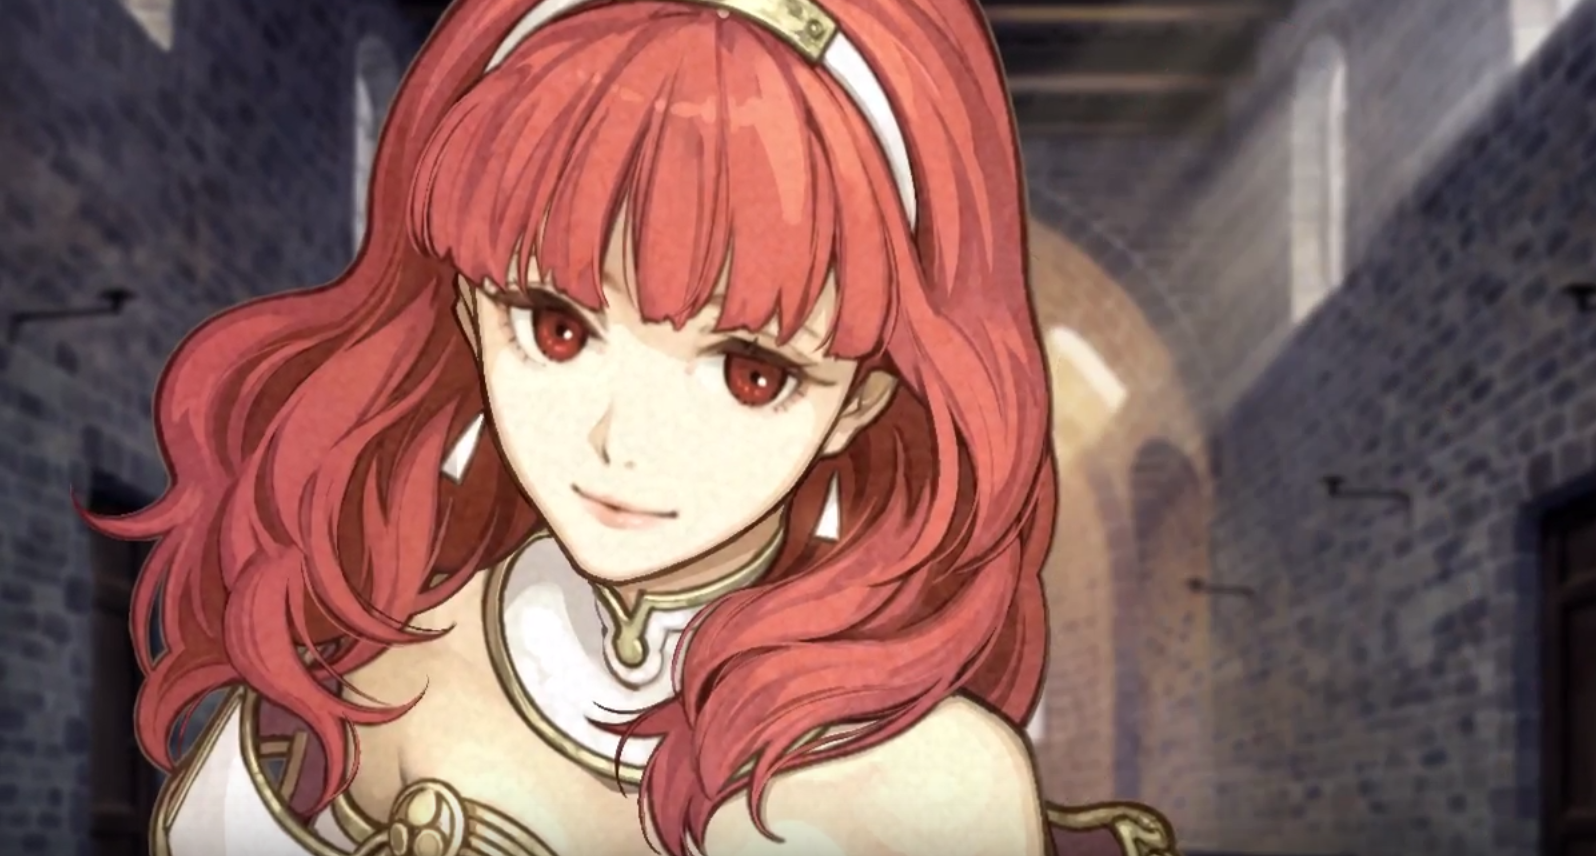 Celica, one of the main characters.